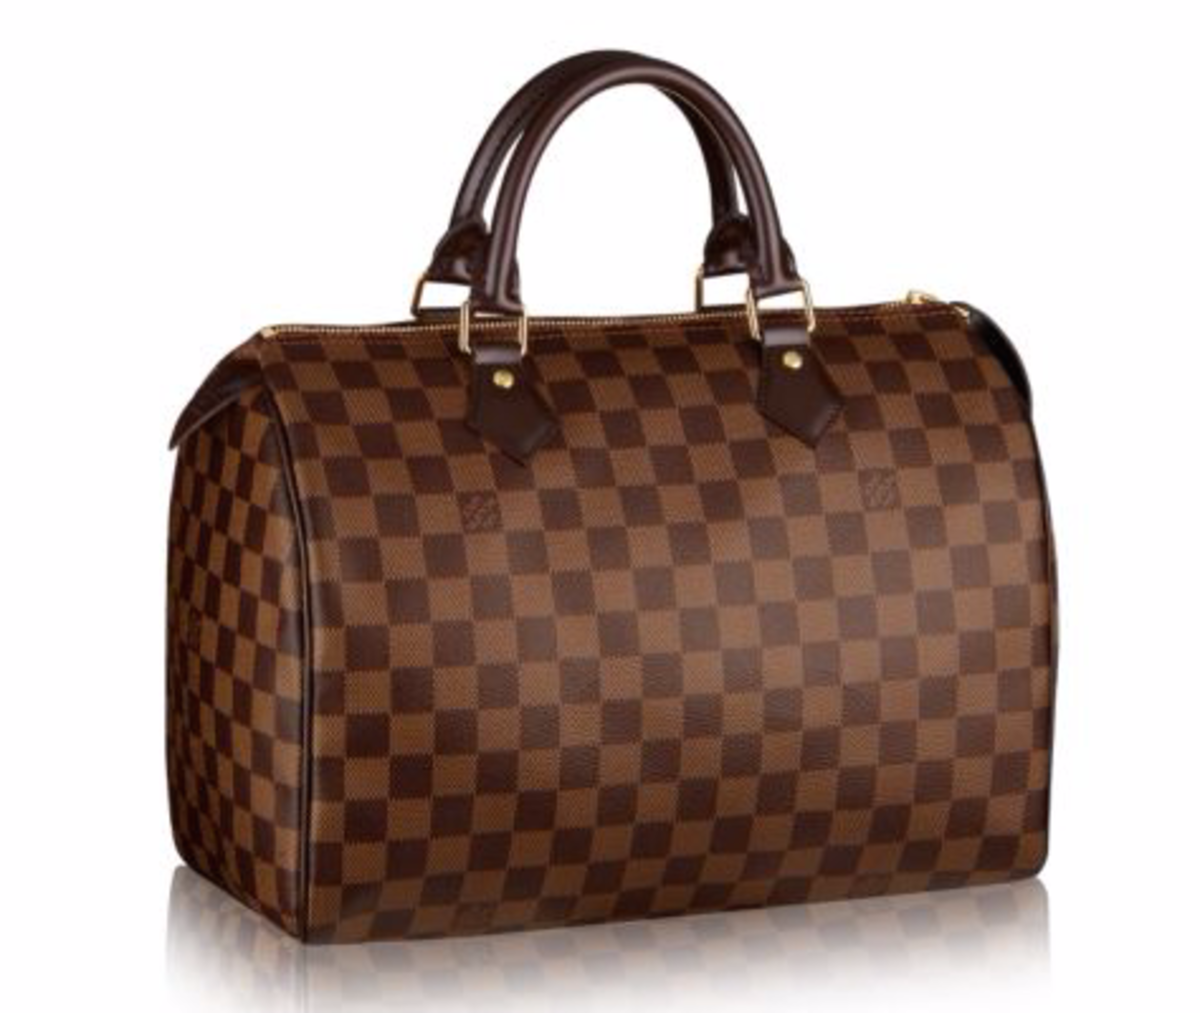 The pattern in question. Photo: Louis Vuitton